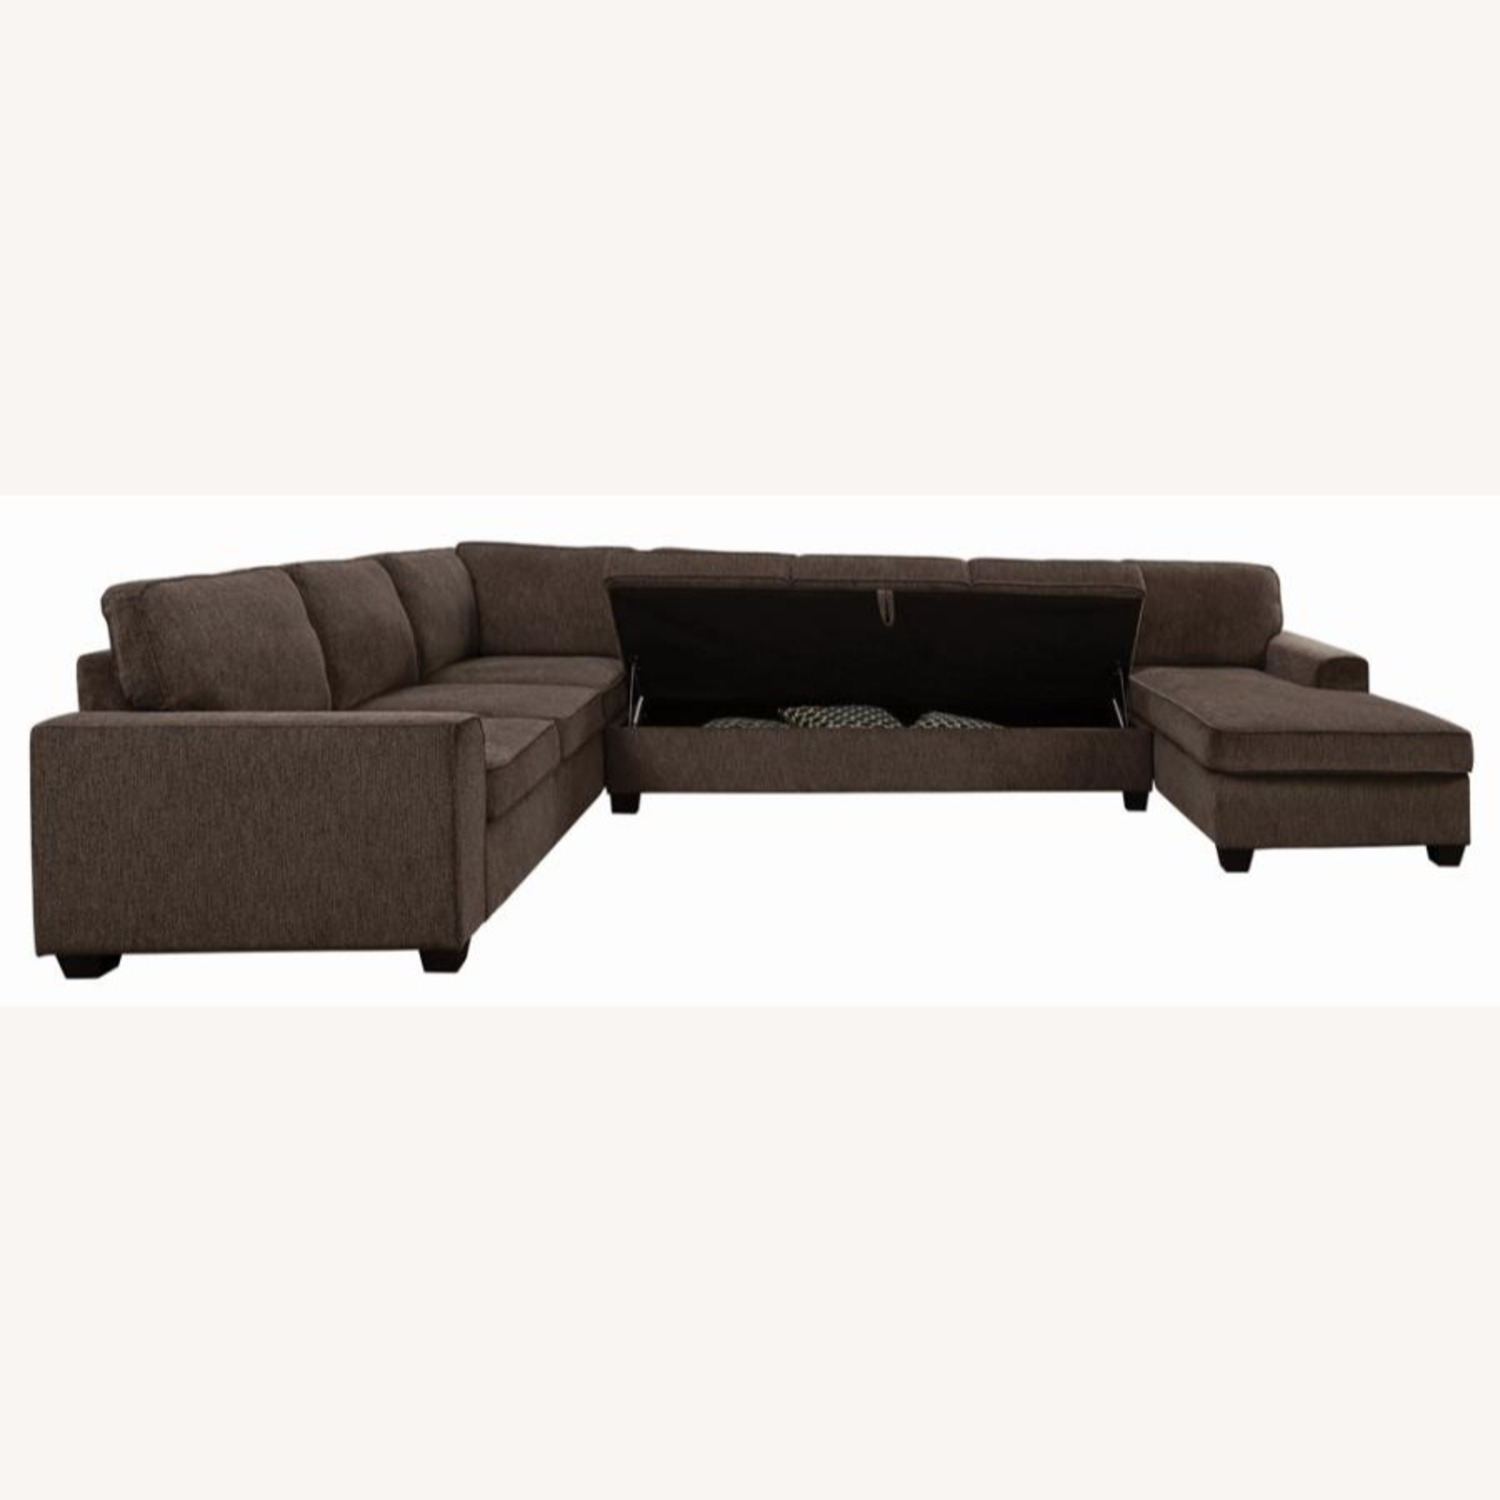 Sectional In Multi-Tonal Brown Chenille Upholstery - image-4